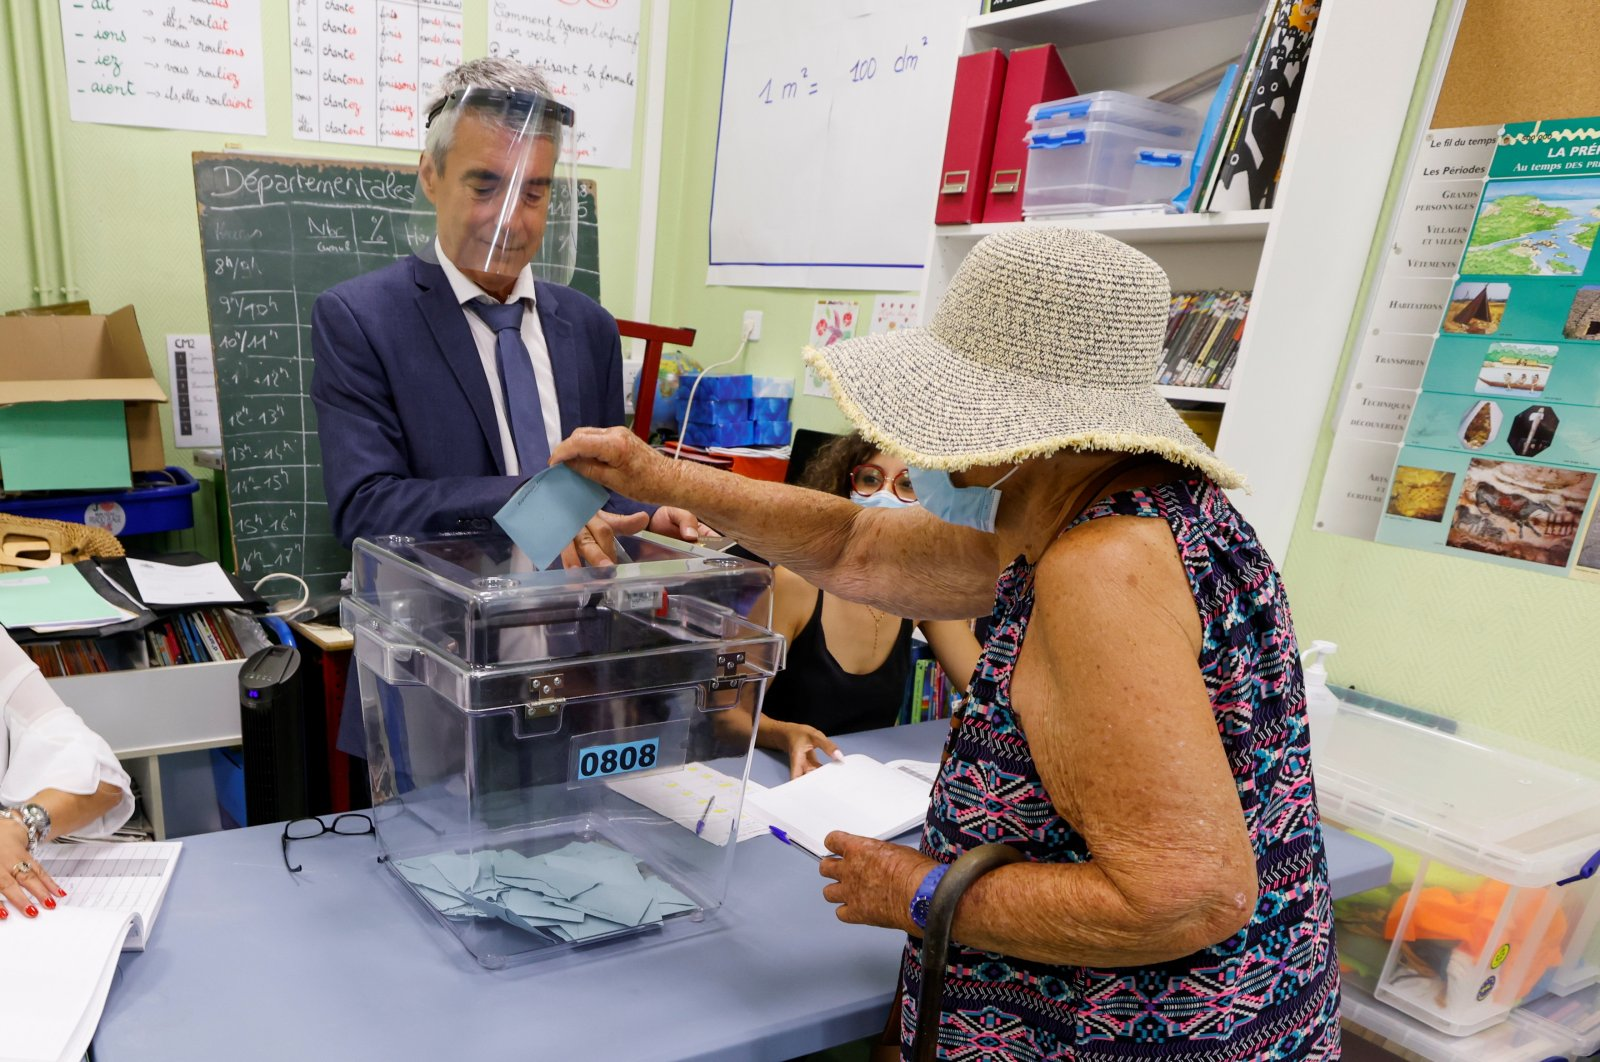 A woman casts her vote at a polling station during the second round of French regional and departmental elections, in Marseille, France, June 27, 2021. (Reuters Photo)